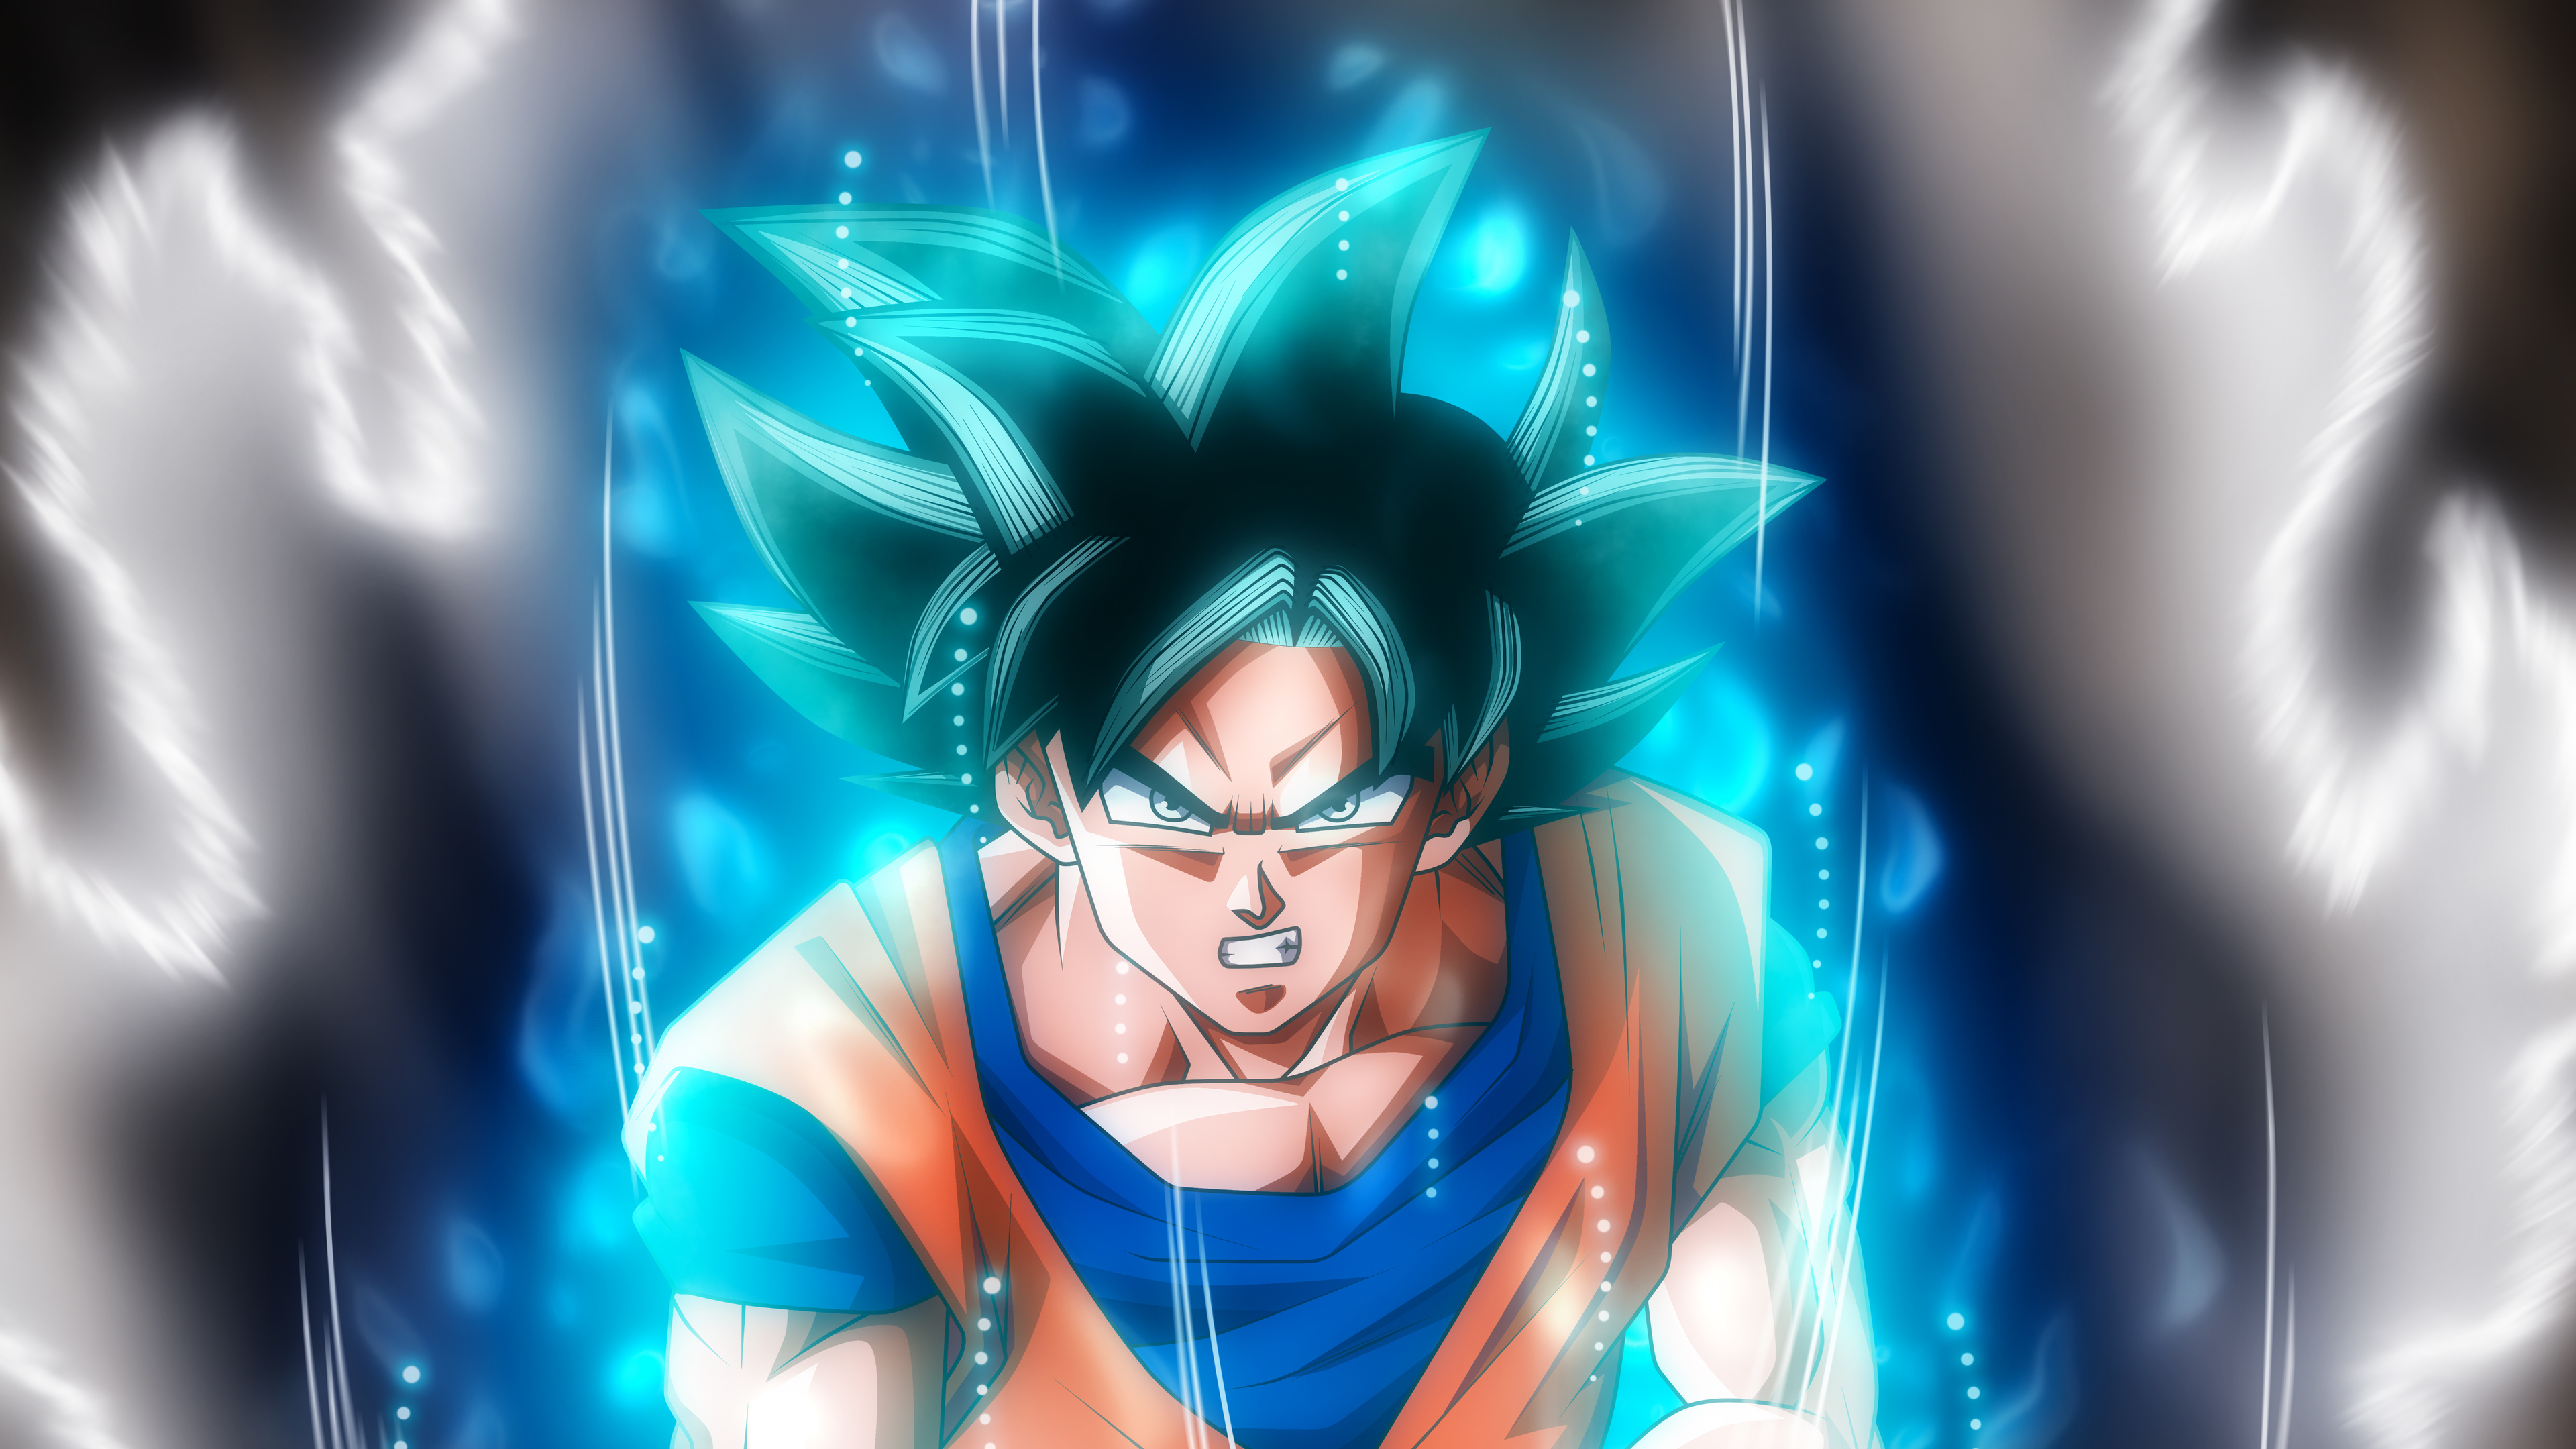 Wallpaper 4k Goku Ultra Instinct Dragon Ball 4k 4k Wallpapers